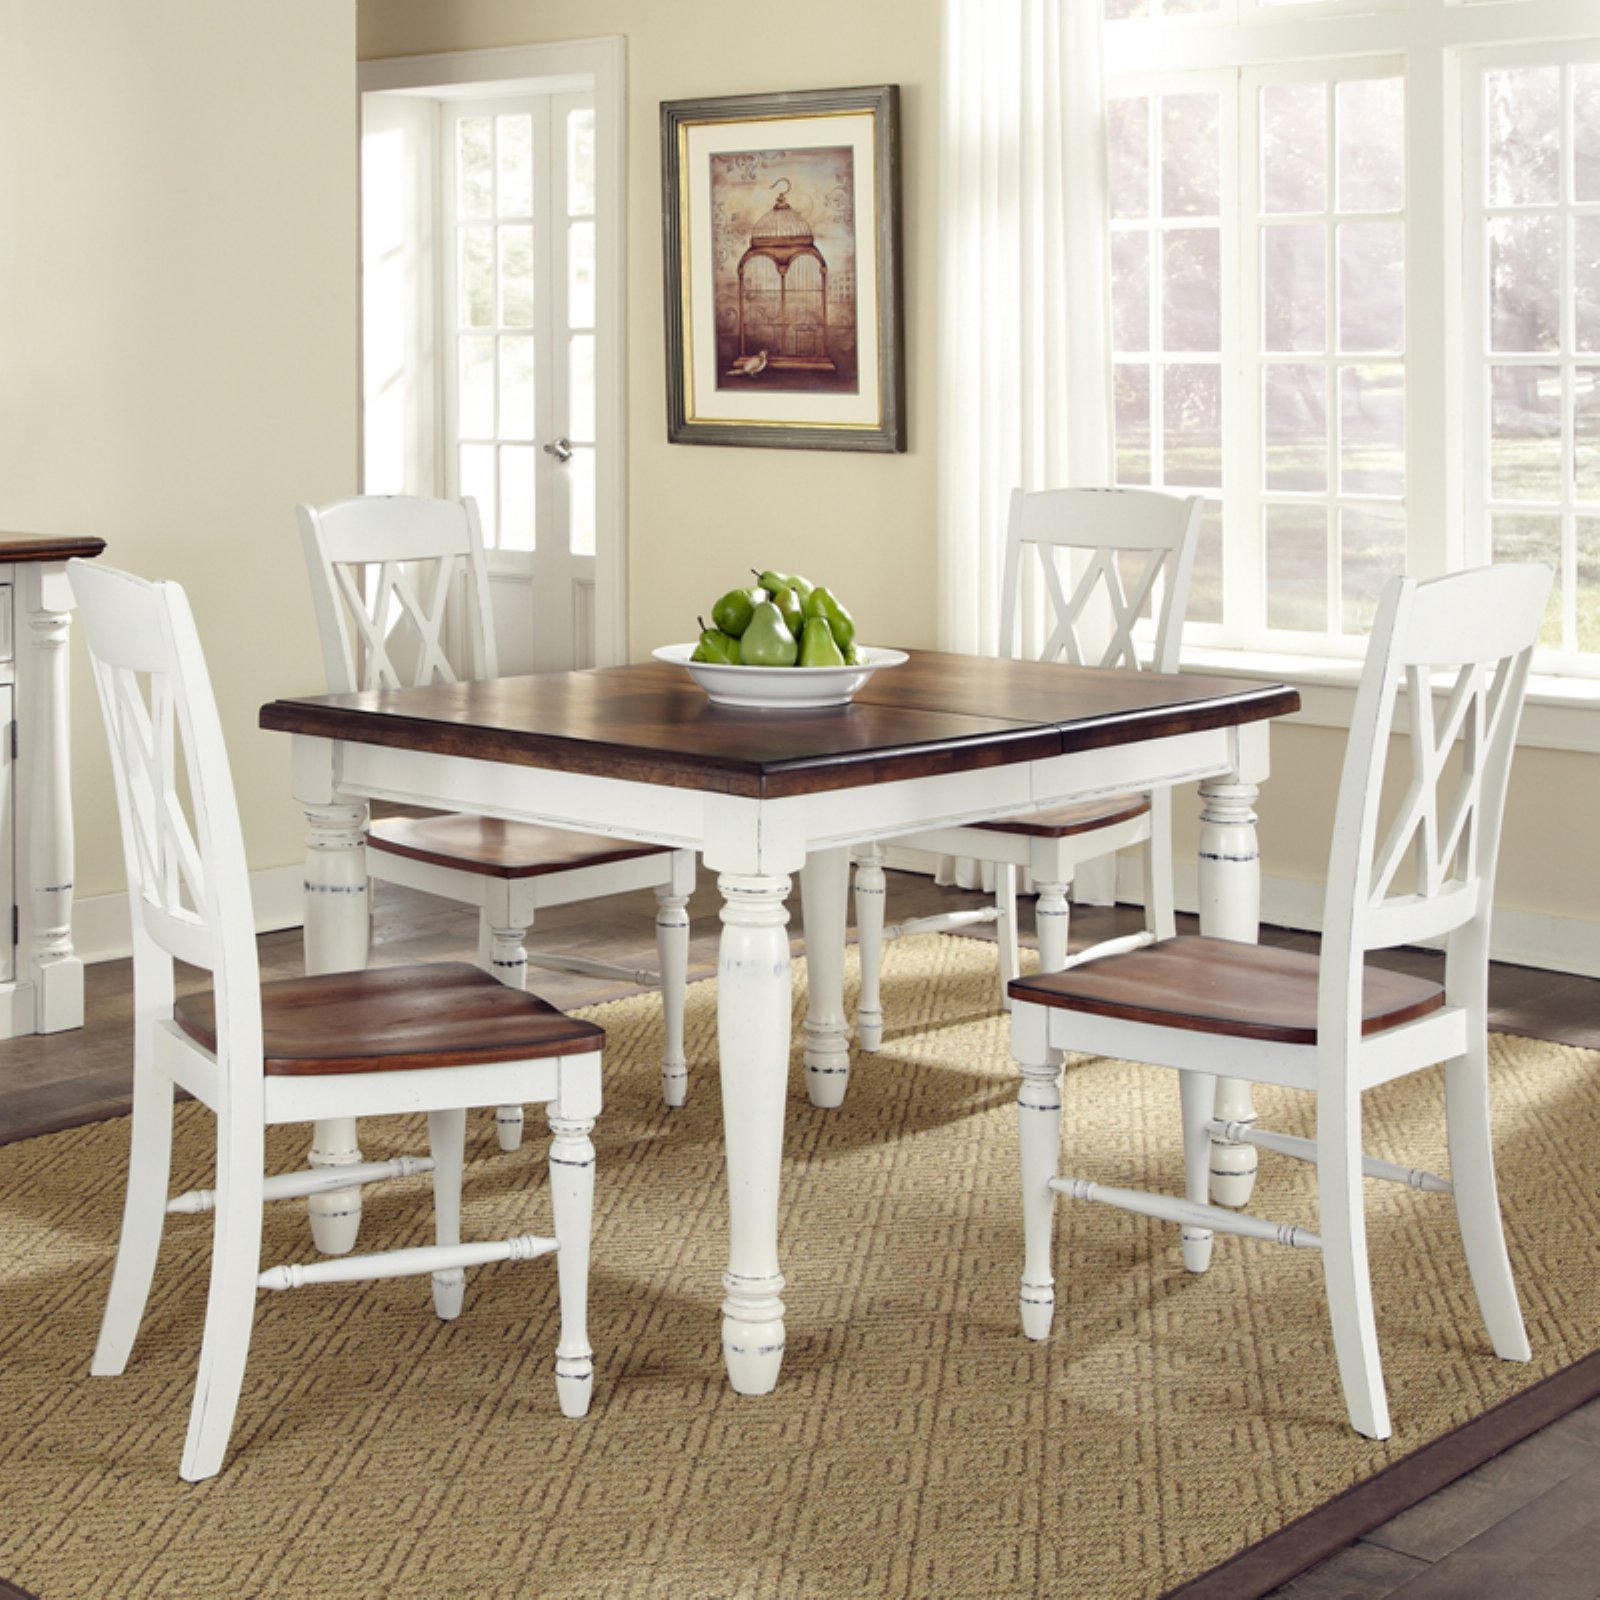 Home Styles Monarch Rectangular Dining Table and 4 Double X-Back Chairs